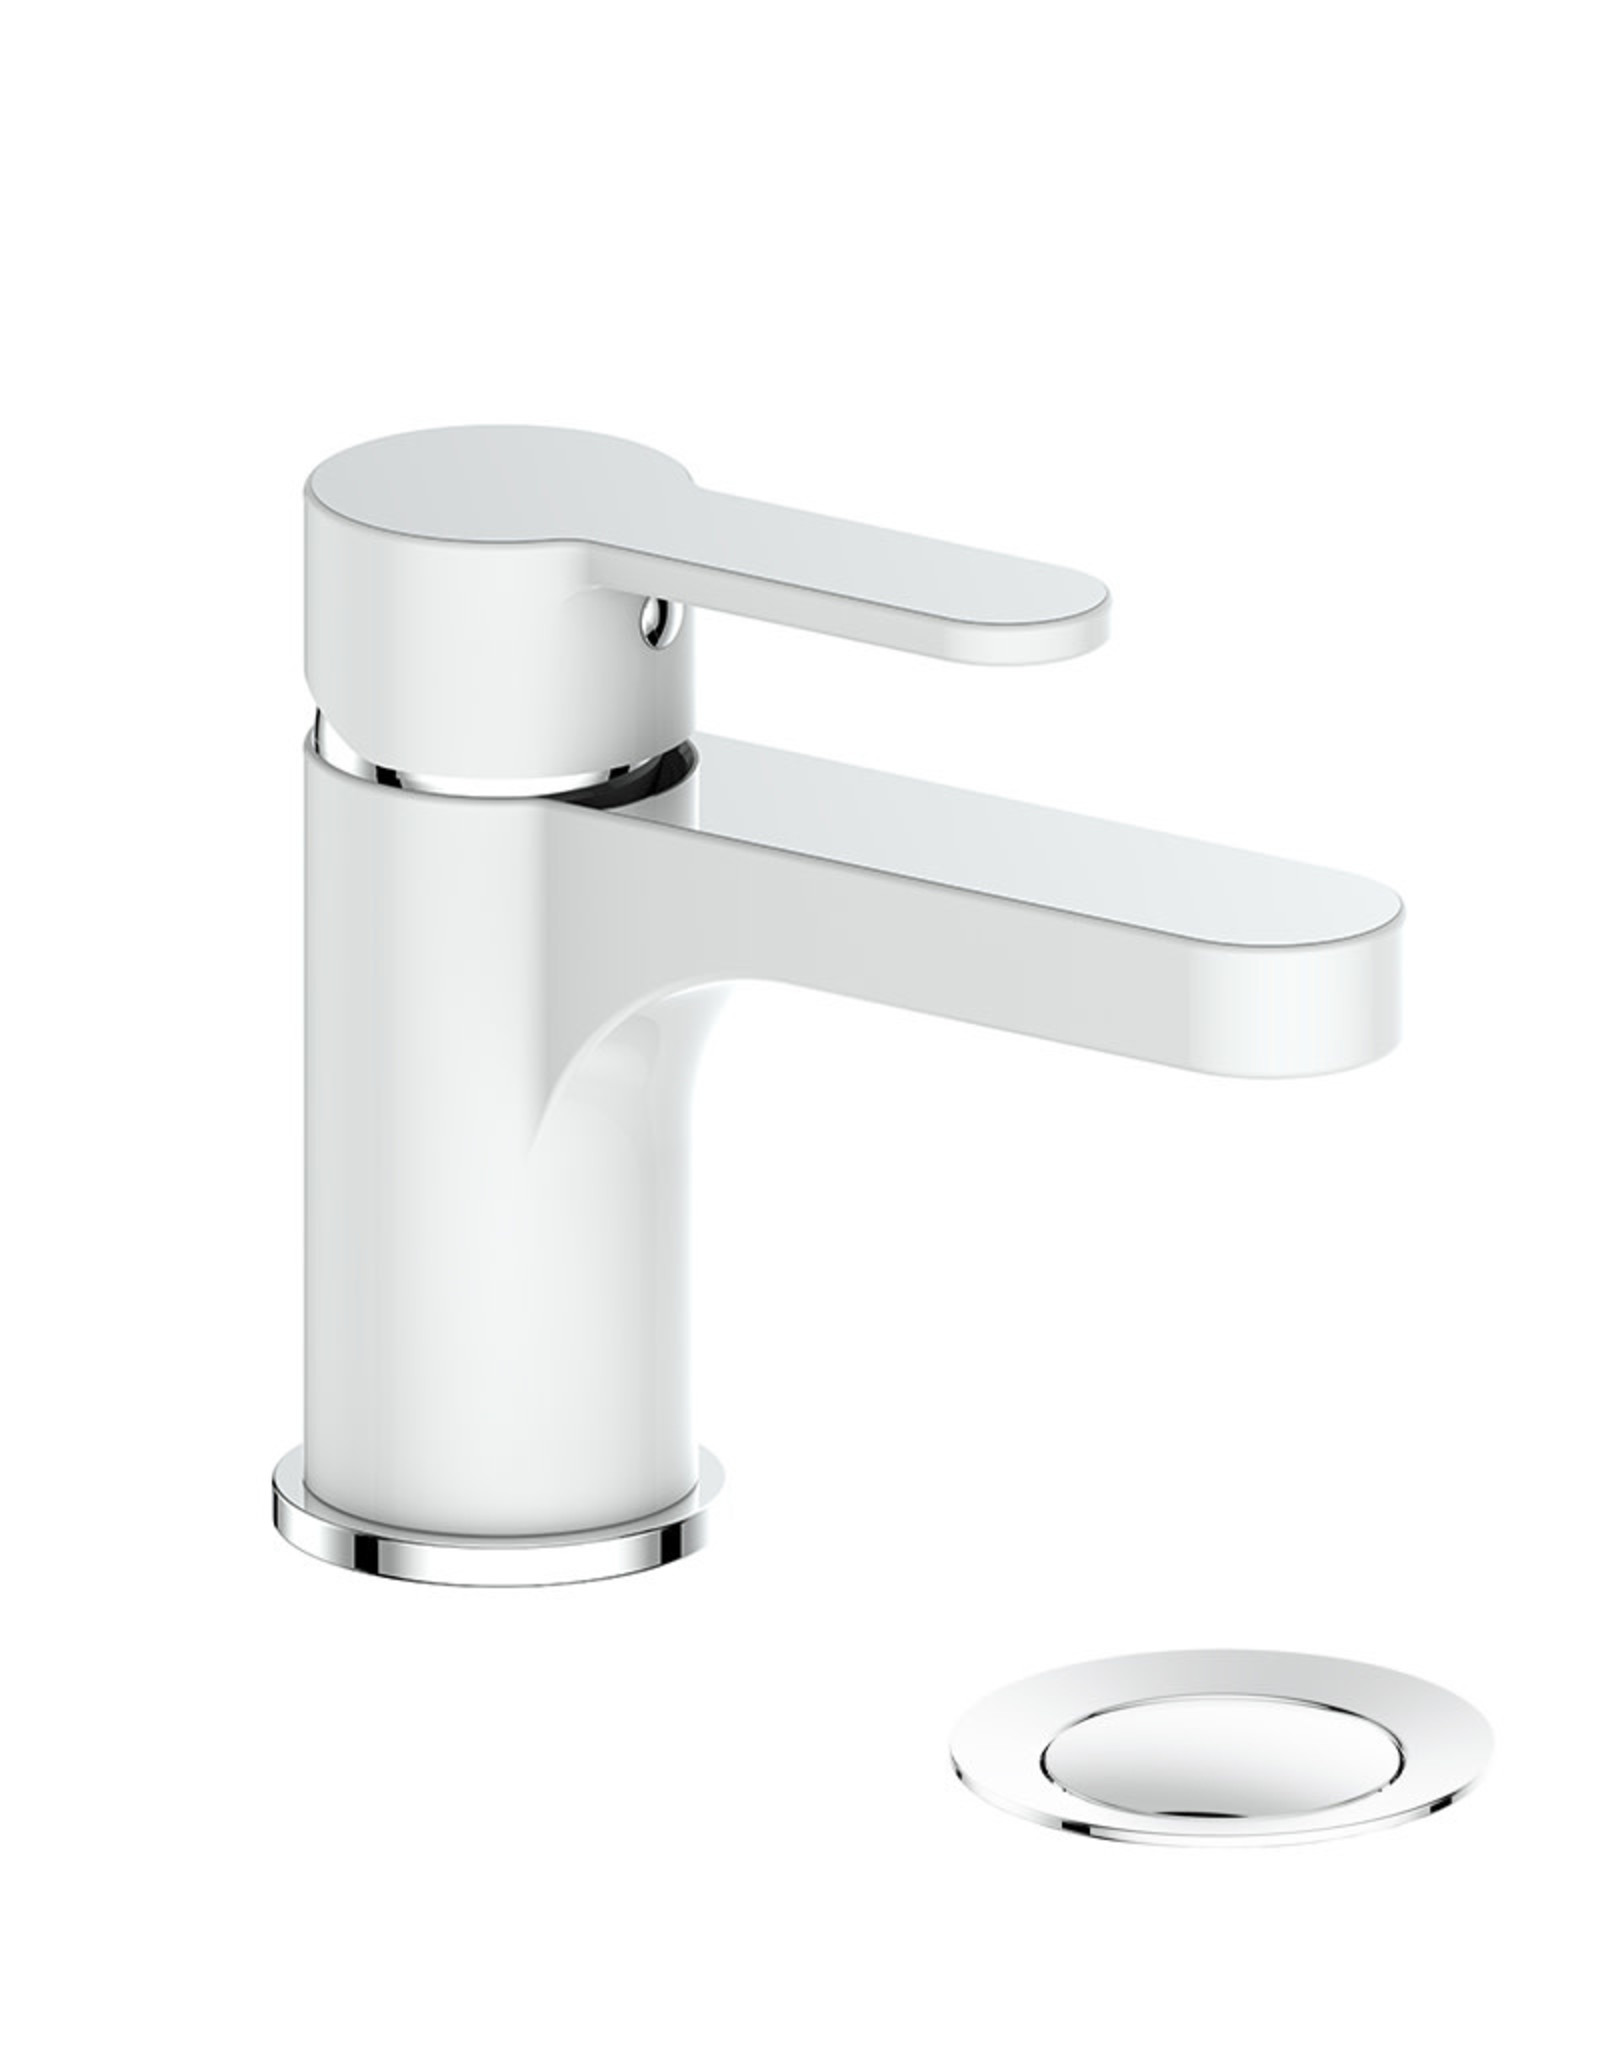 Vogt VOGT - LUSTEN CHROME SINGLE LAVATORY FAUCET